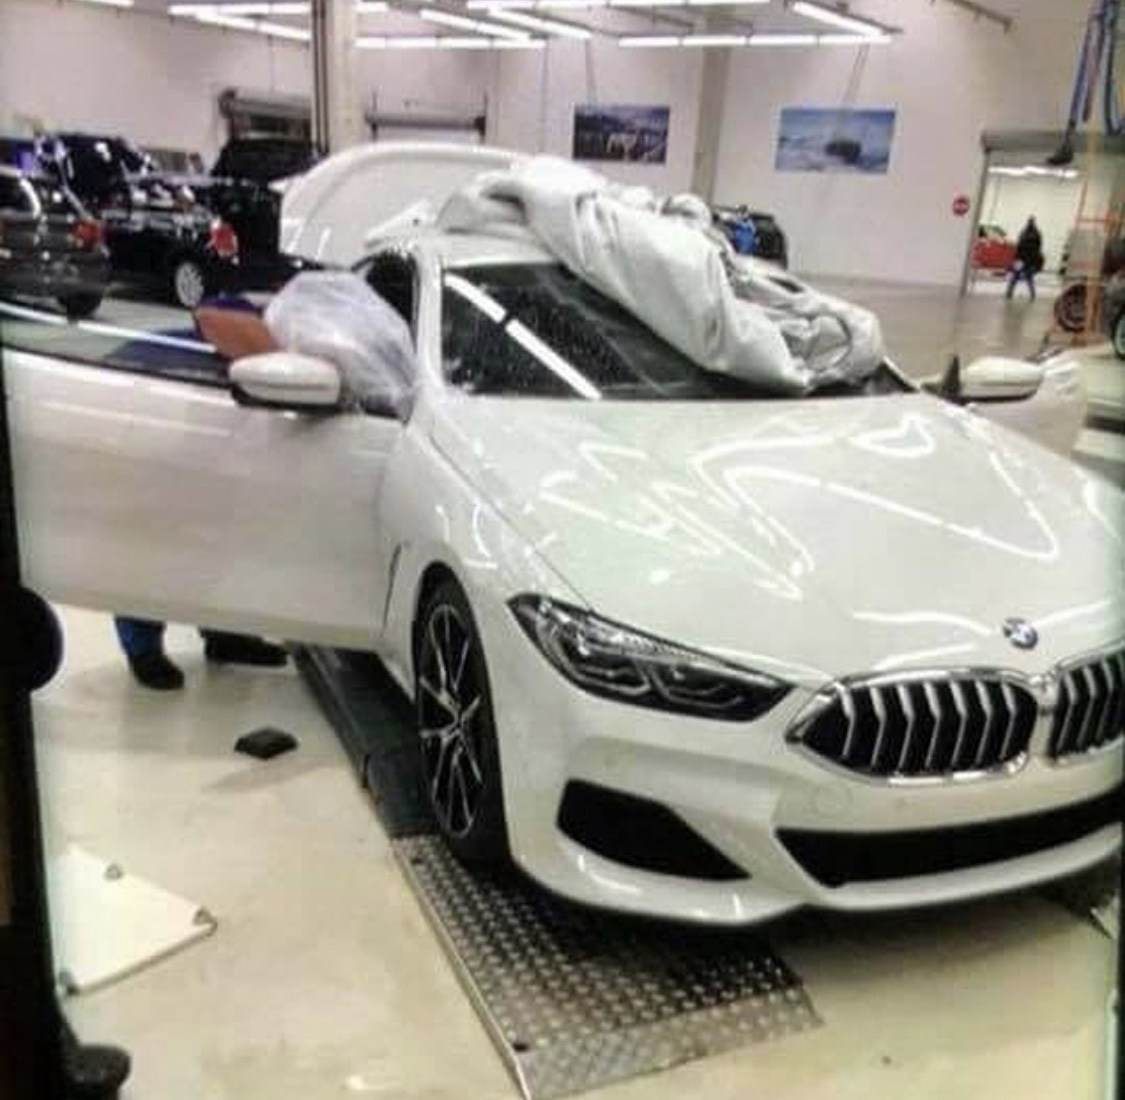 Gorgeous Looking Production Bmw 8 Series Spied Undisguised Completely